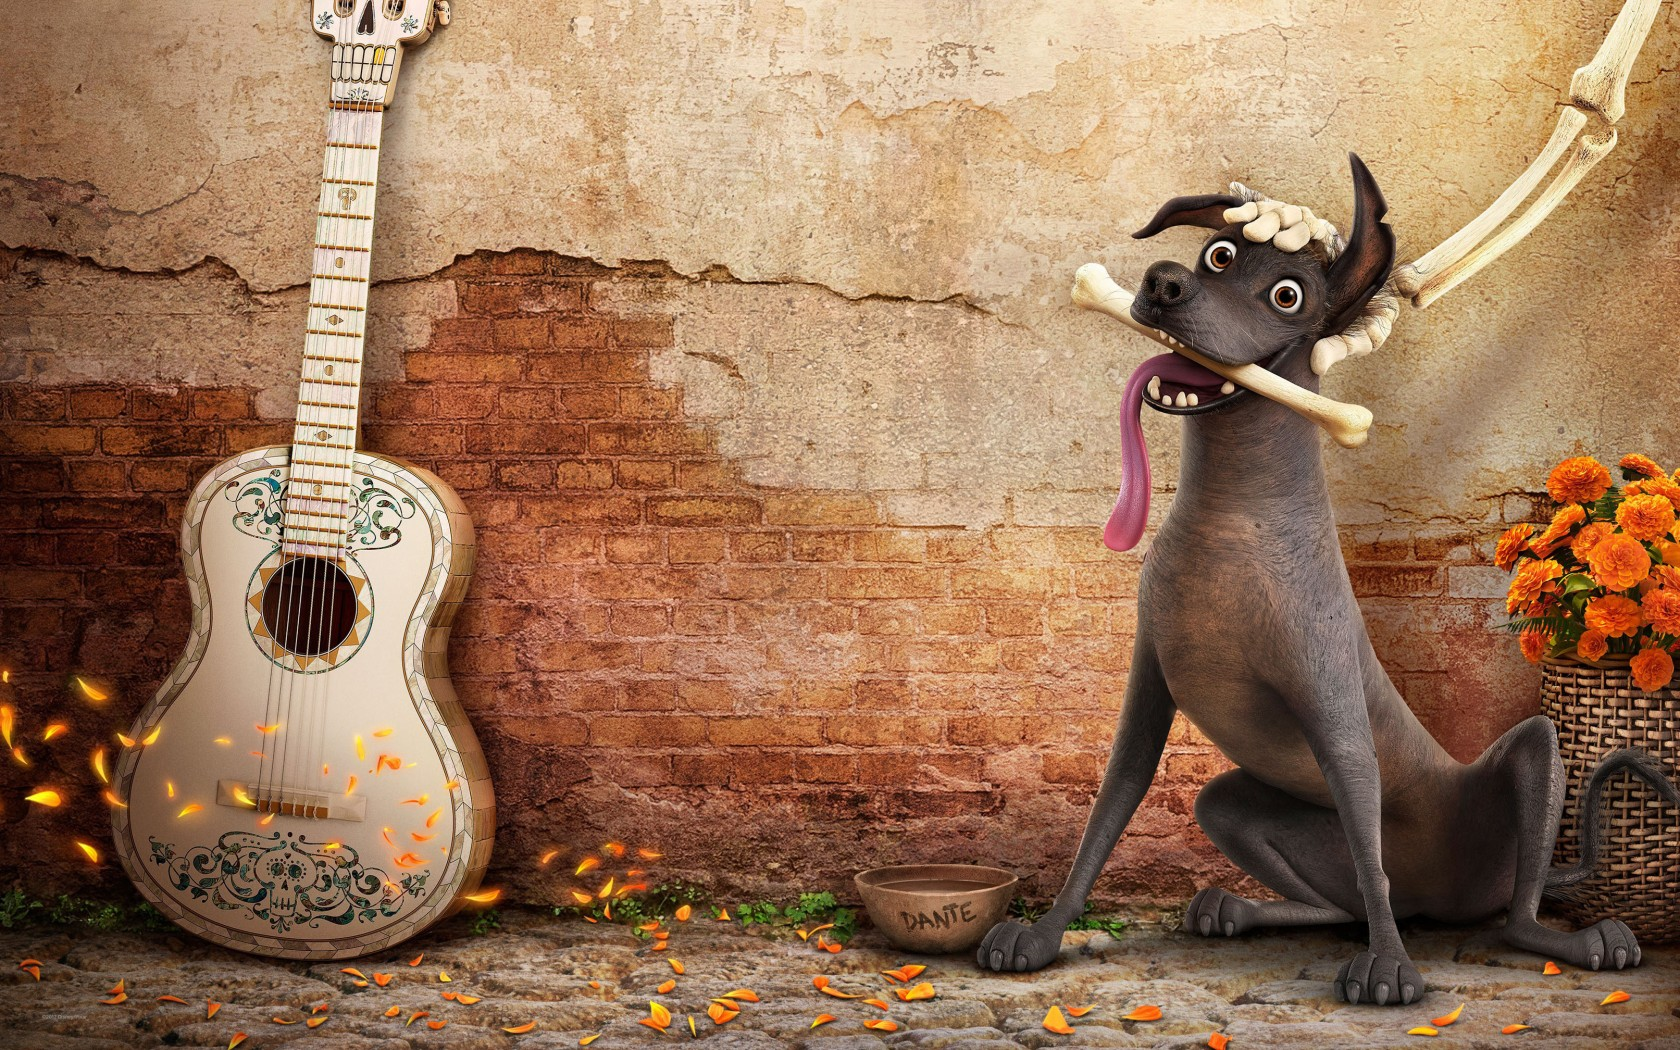 Cute Baby Doll Wallpaper Dante Dog In Coco Wallpapers Hd Wallpapers Id 22411